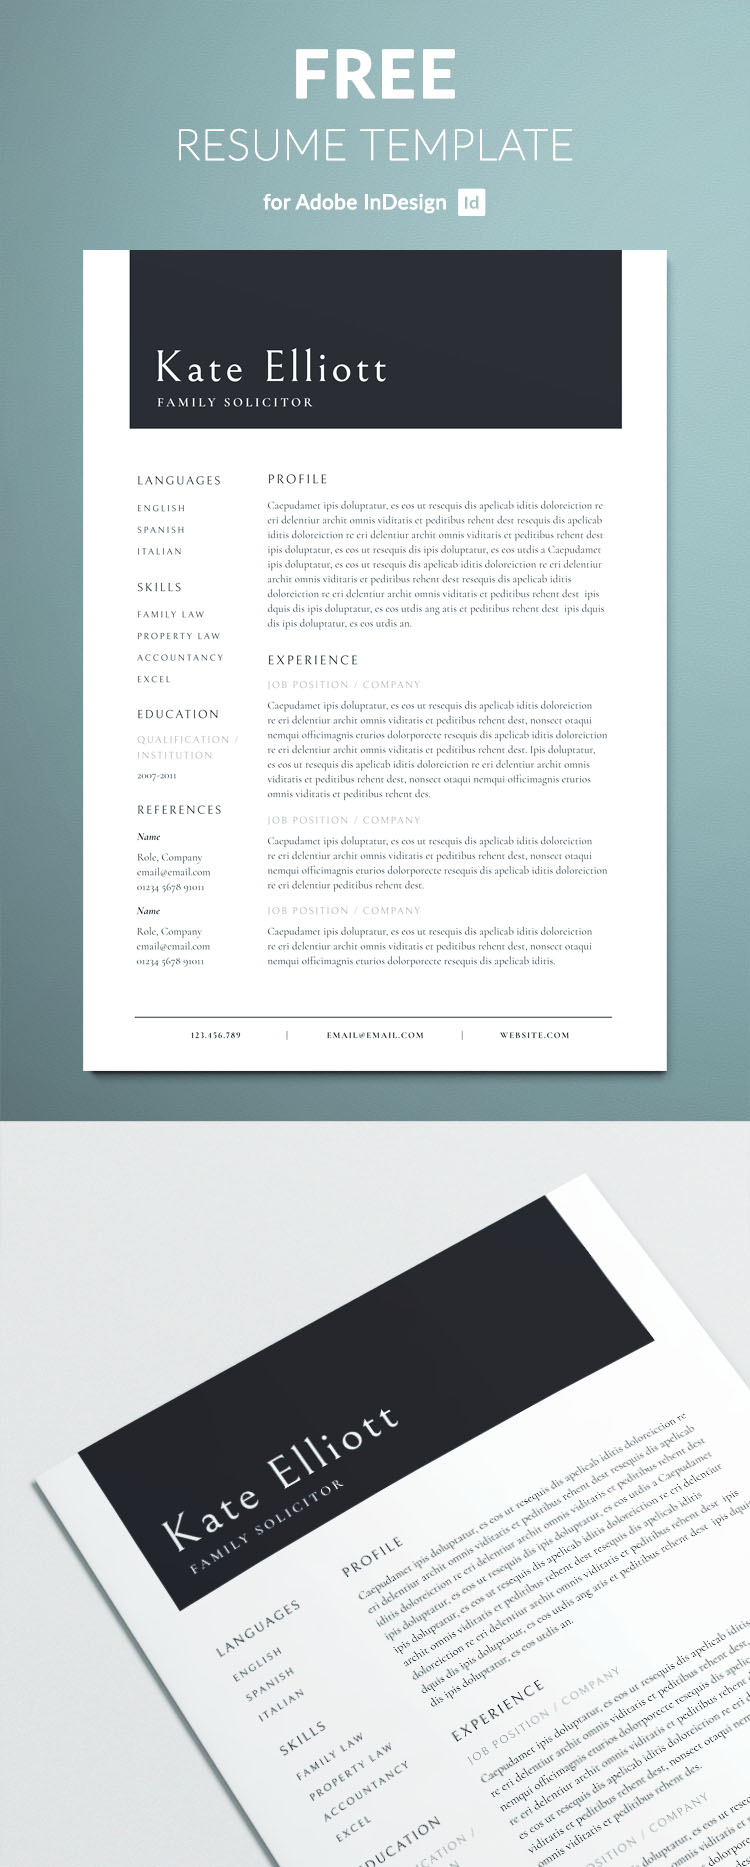 Professional Resume Template   Free InDesign Templates Professional resume template for InDesign   Free Download   Professionally  created layout